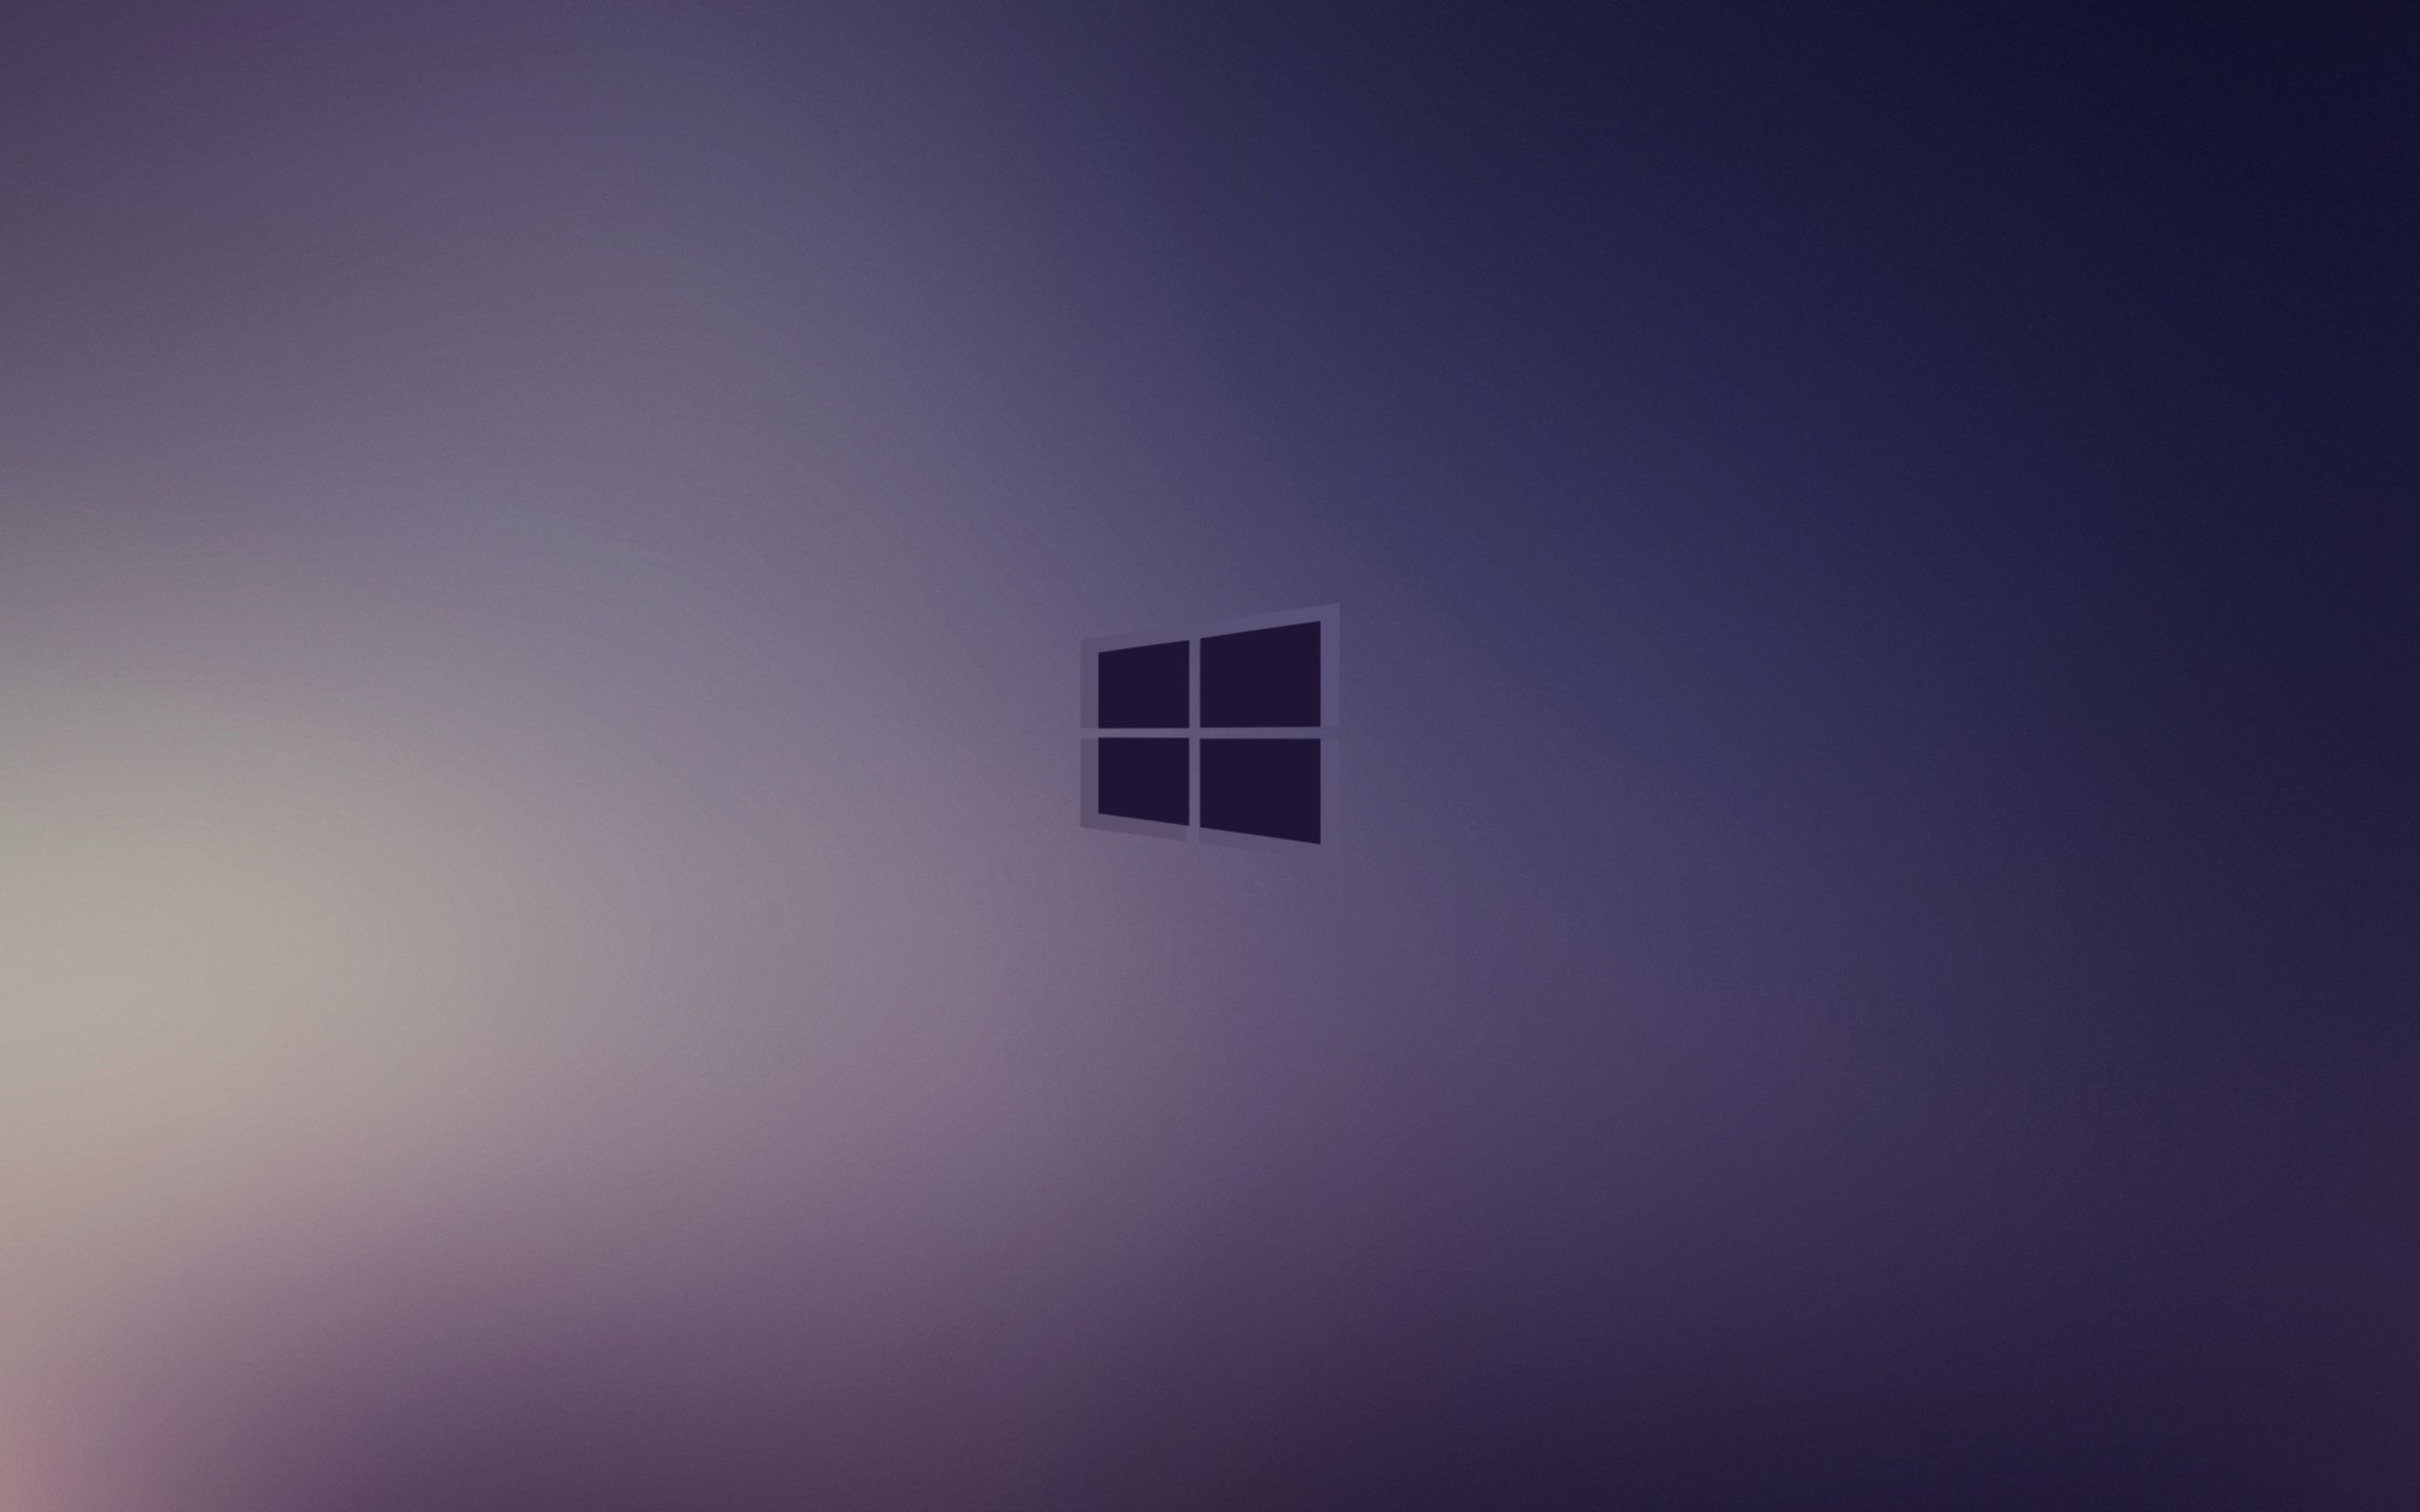 Download free HD Windows 10 Minimal Wide Wallpaper, image